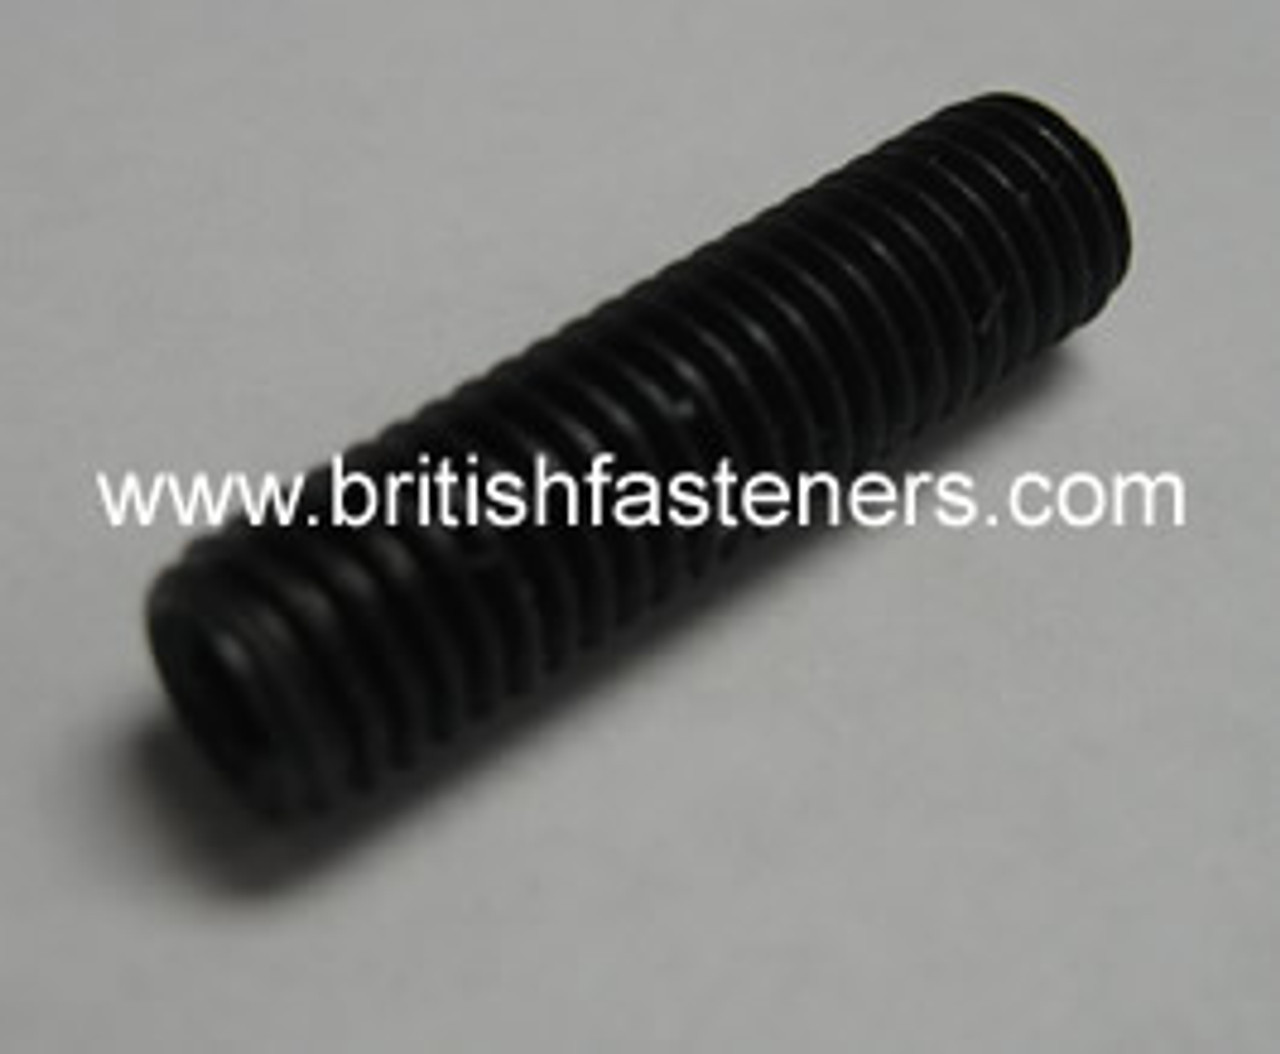 "GRUB SCREW BSF 1/4"" - 26 x 1/2"" LONG - (6131A)"